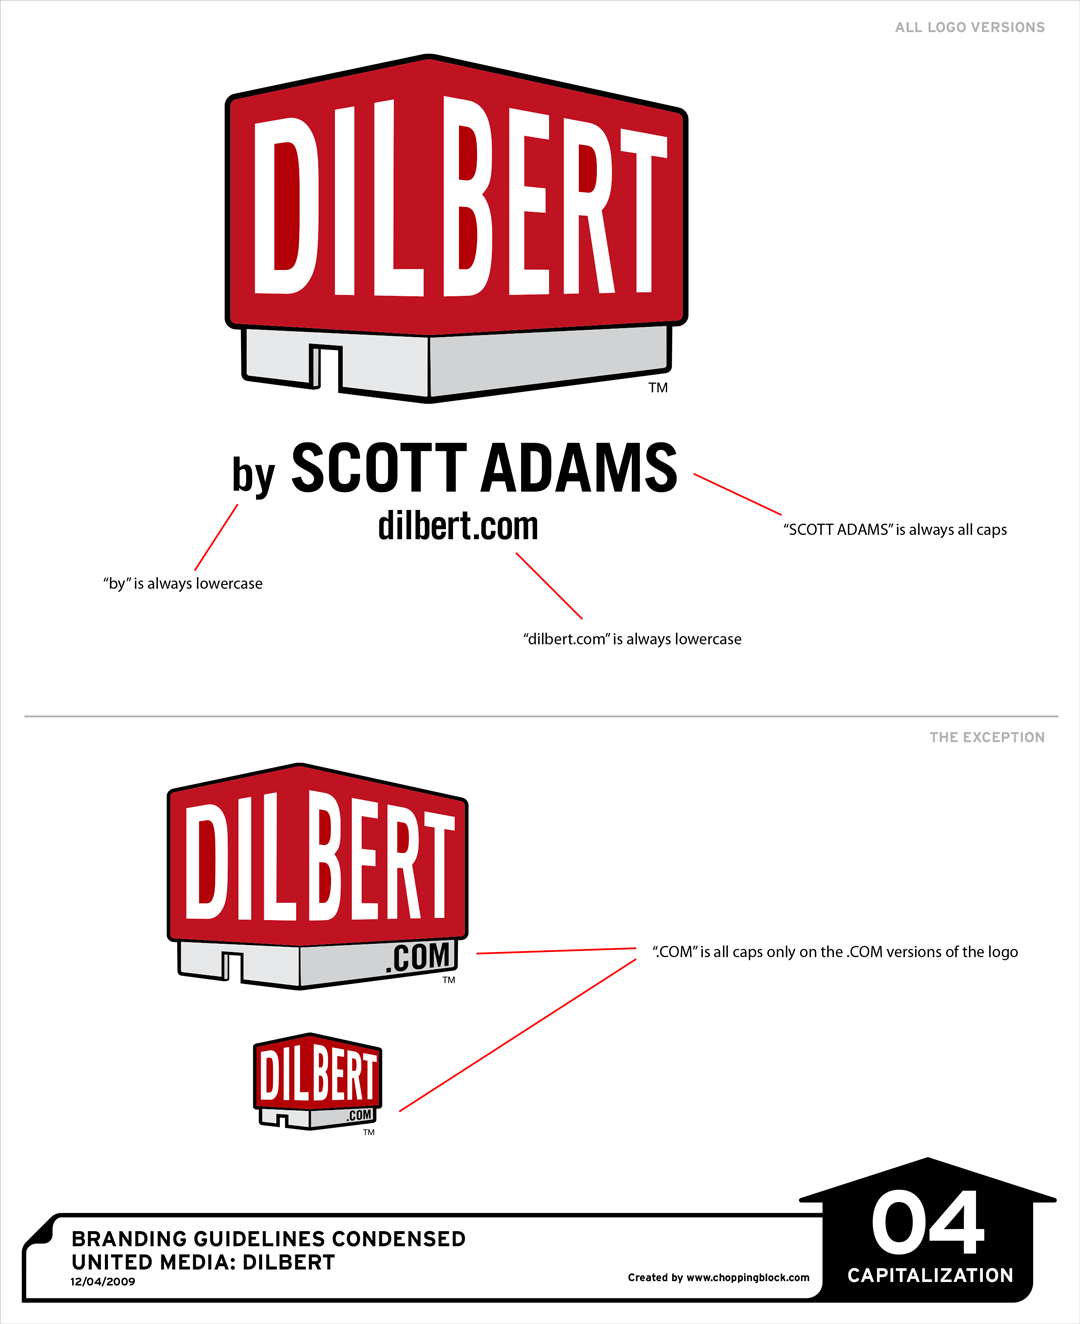 A page from the Dilbert Style Guide on capitalization within the brand.